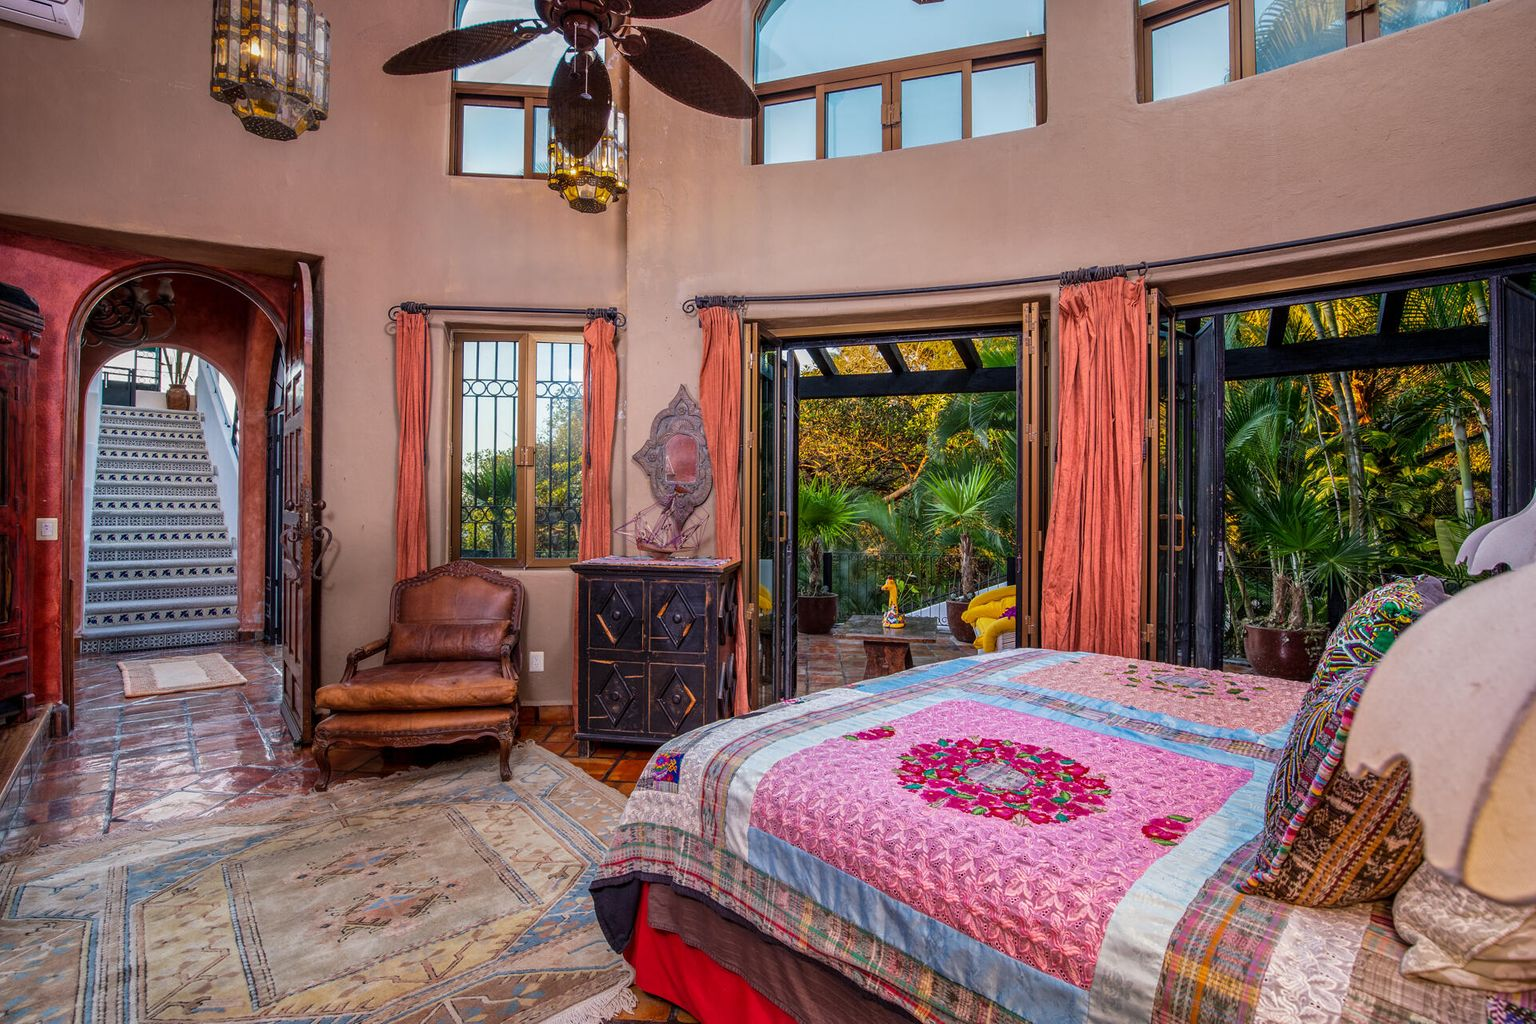 French doors open to the terrace with views of the garden/jungle